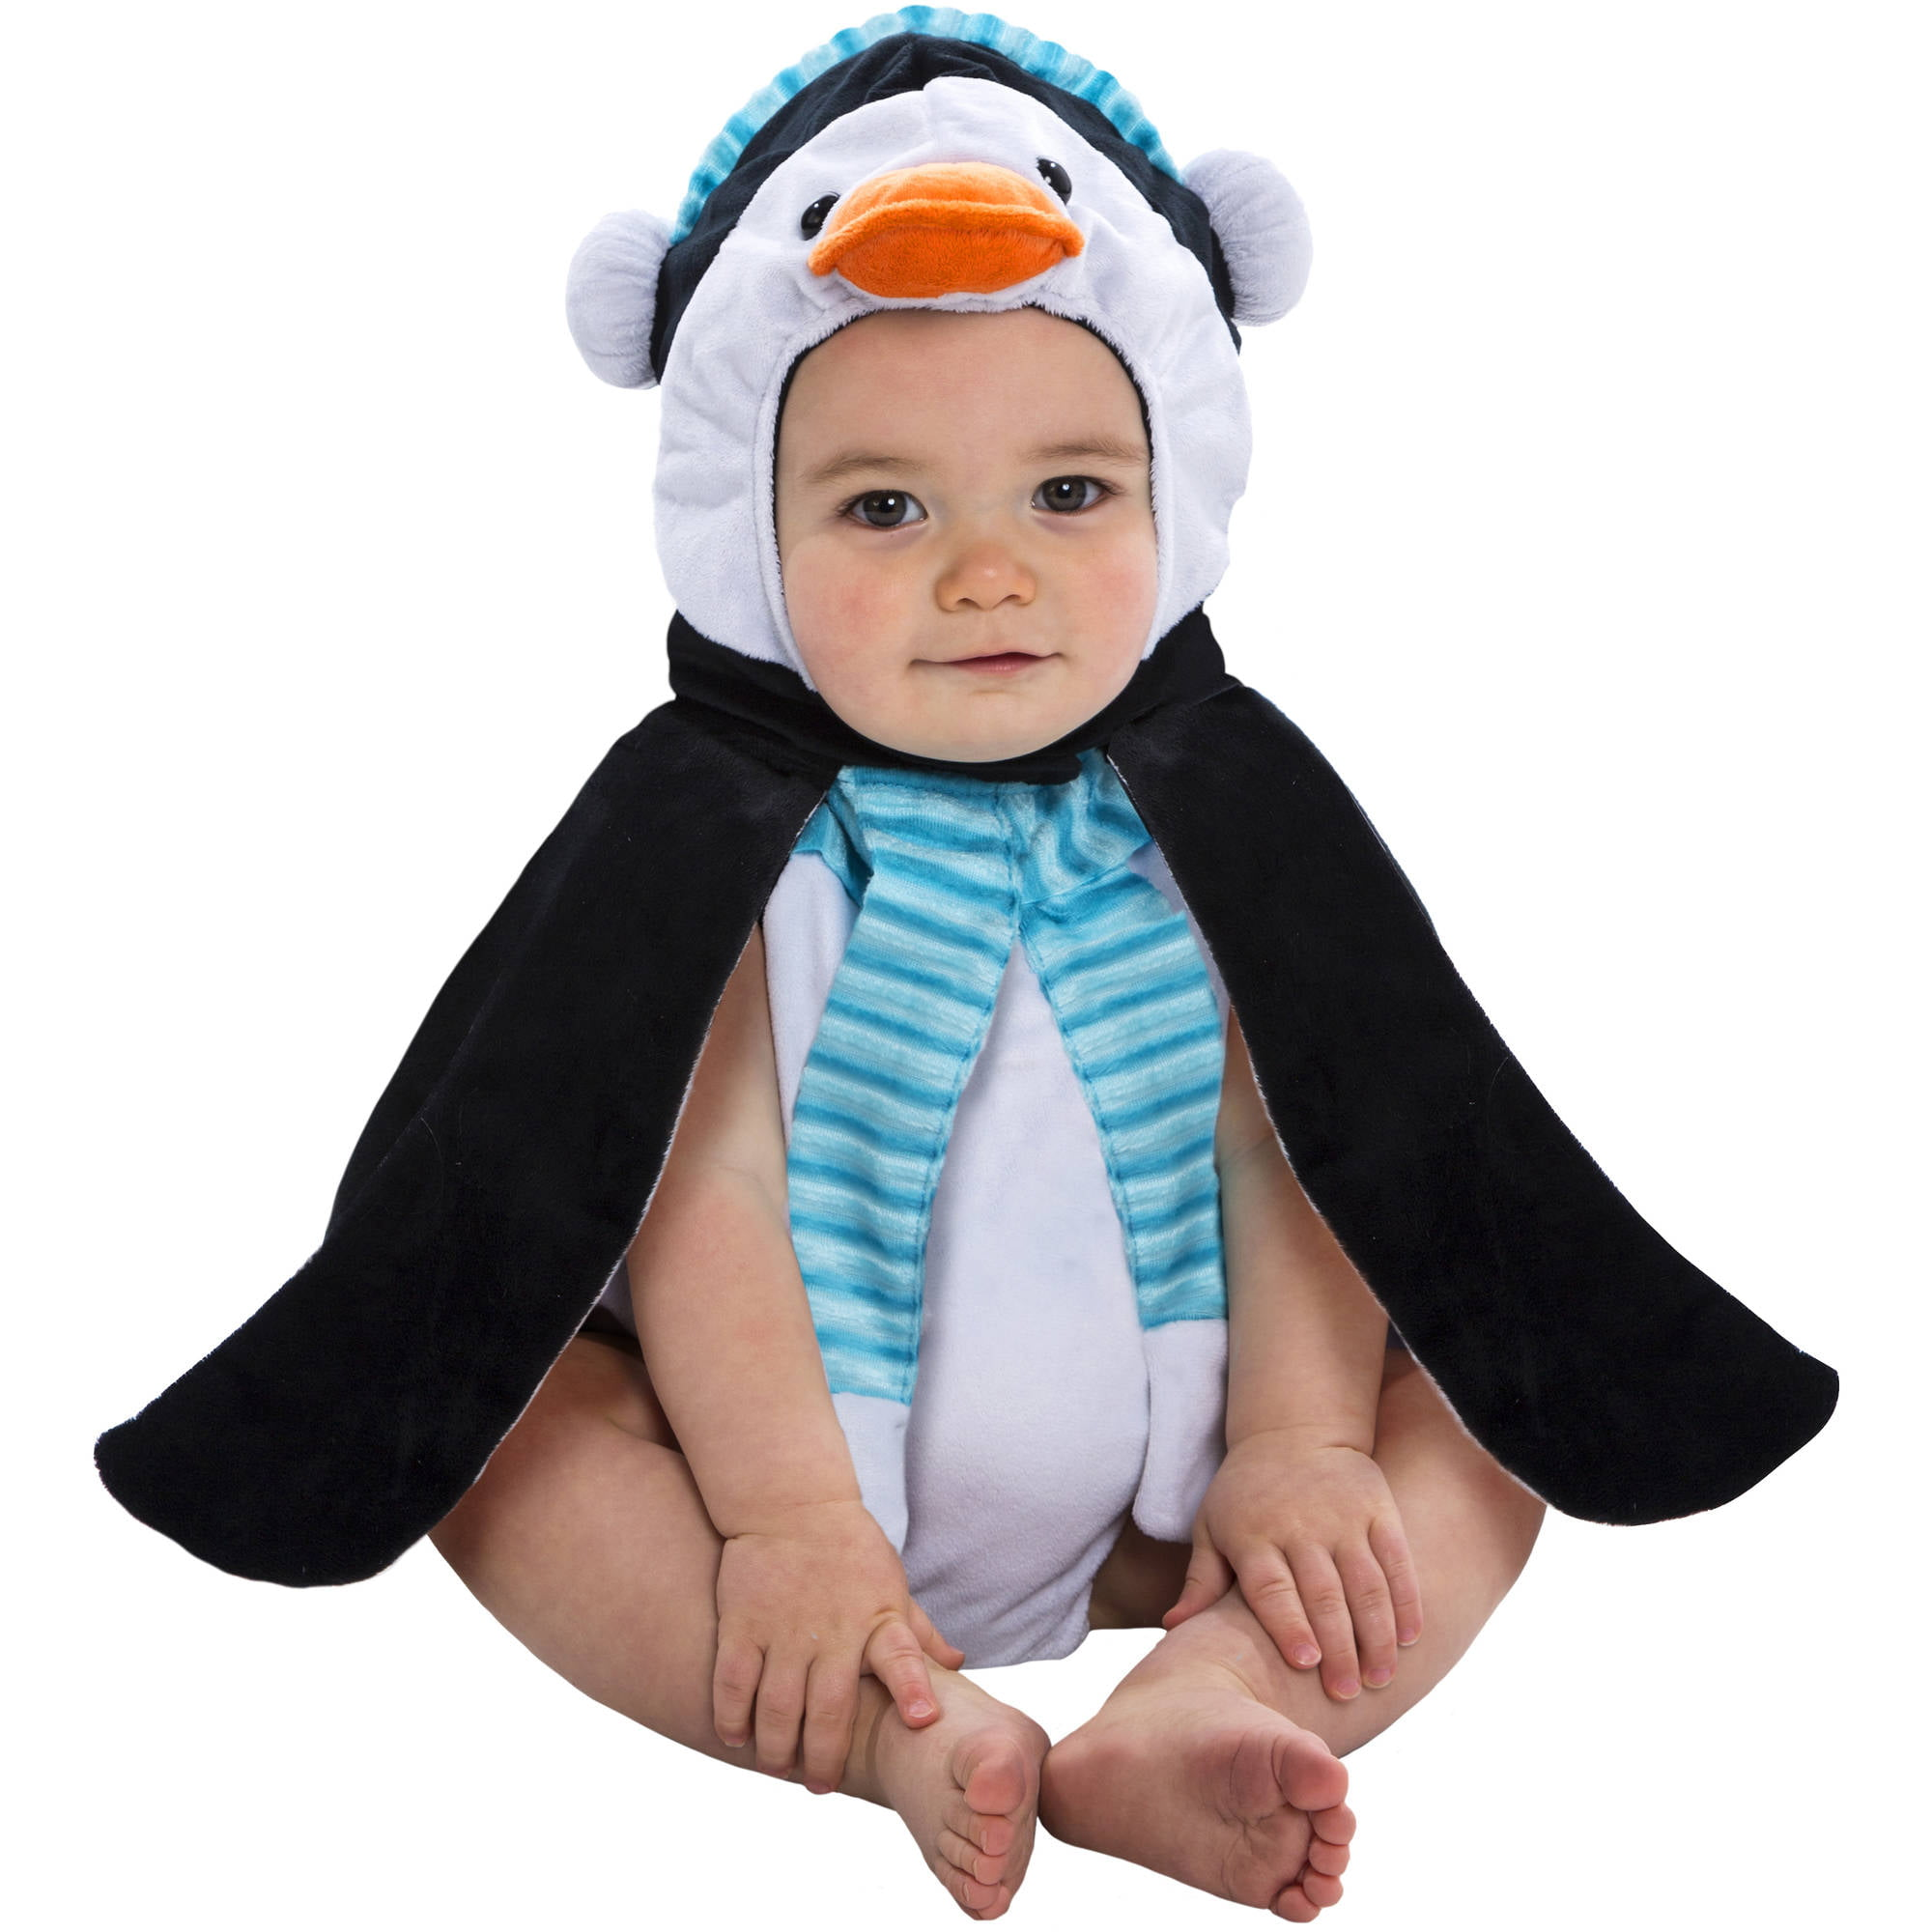 penguin bubble infant halloween dress up role play costume walmartcom - Walmart Halloween Costumes For Baby